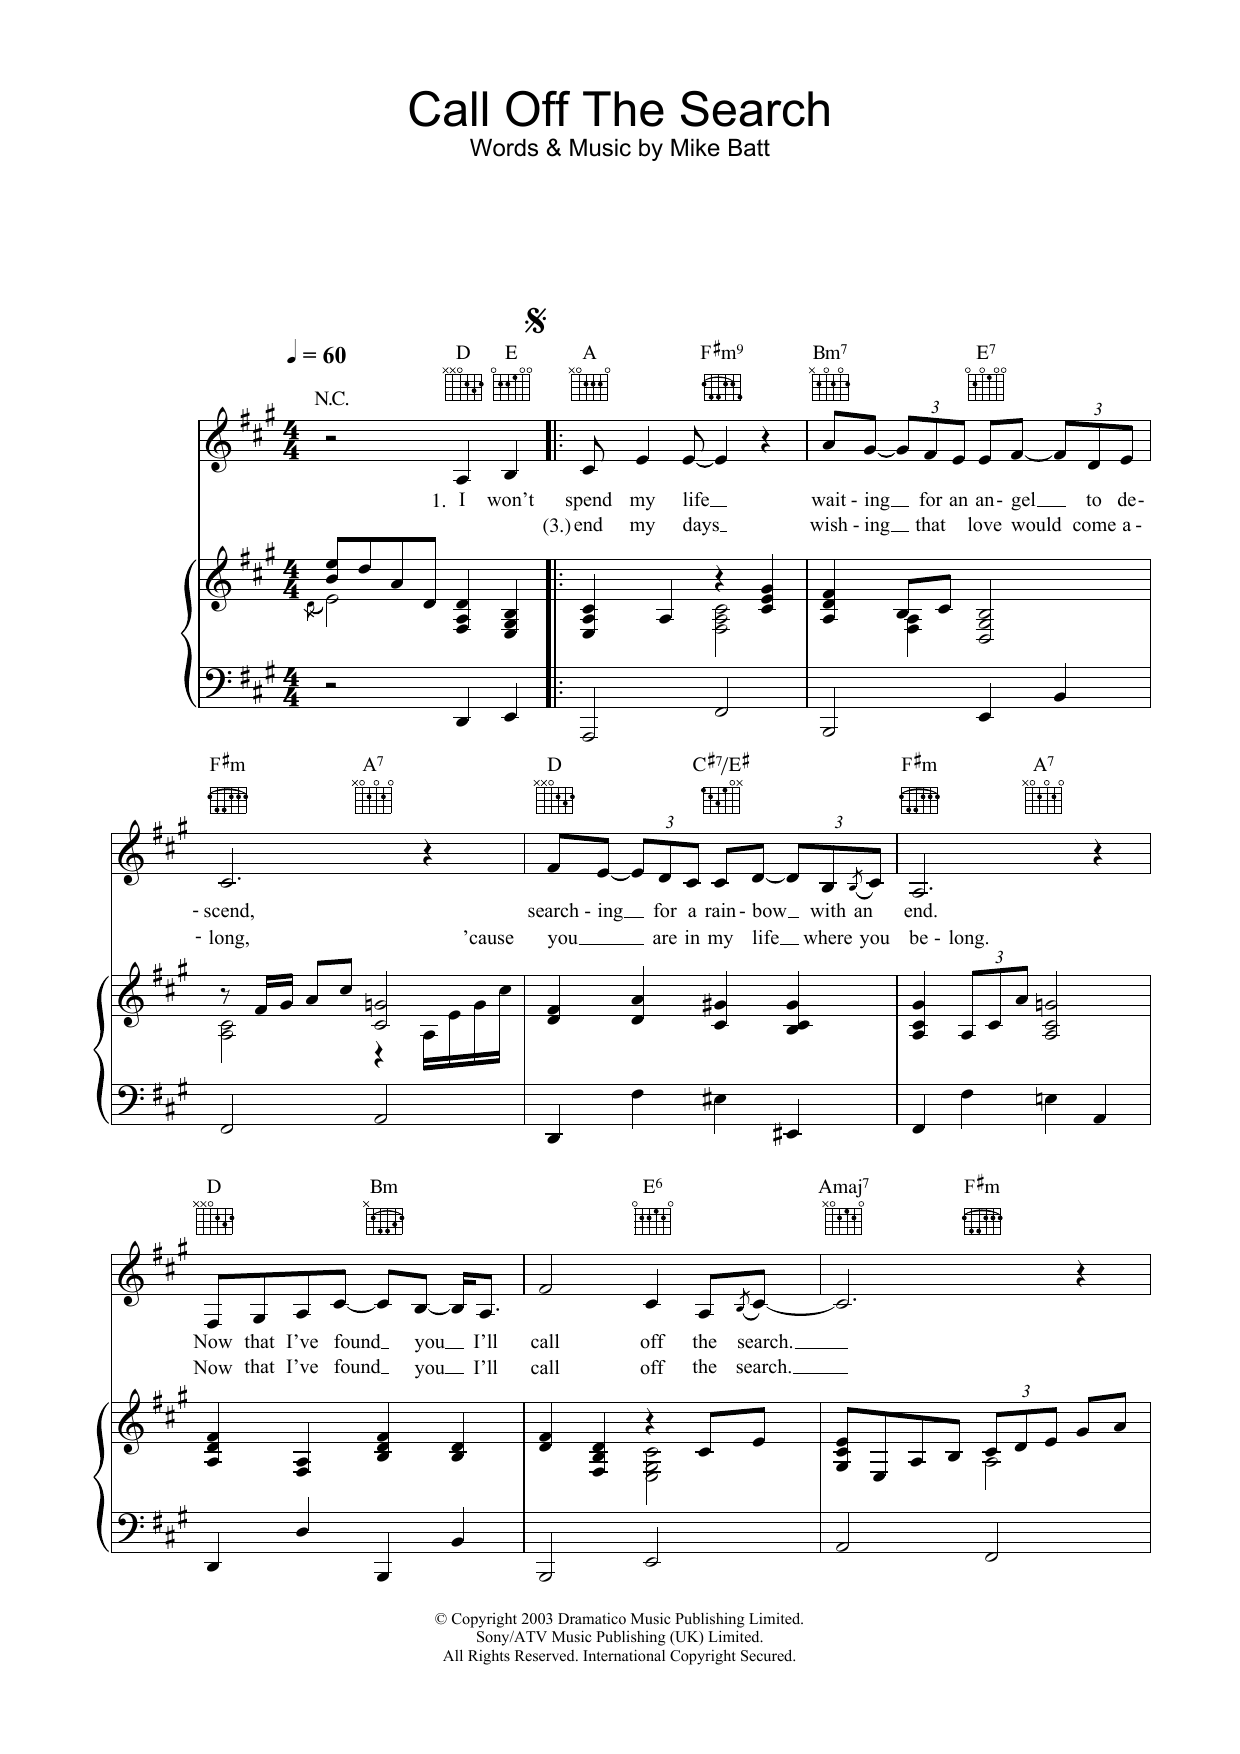 Katie Melua Call Off The Search sheet music preview music notes and score for Piano including 3 page(s)